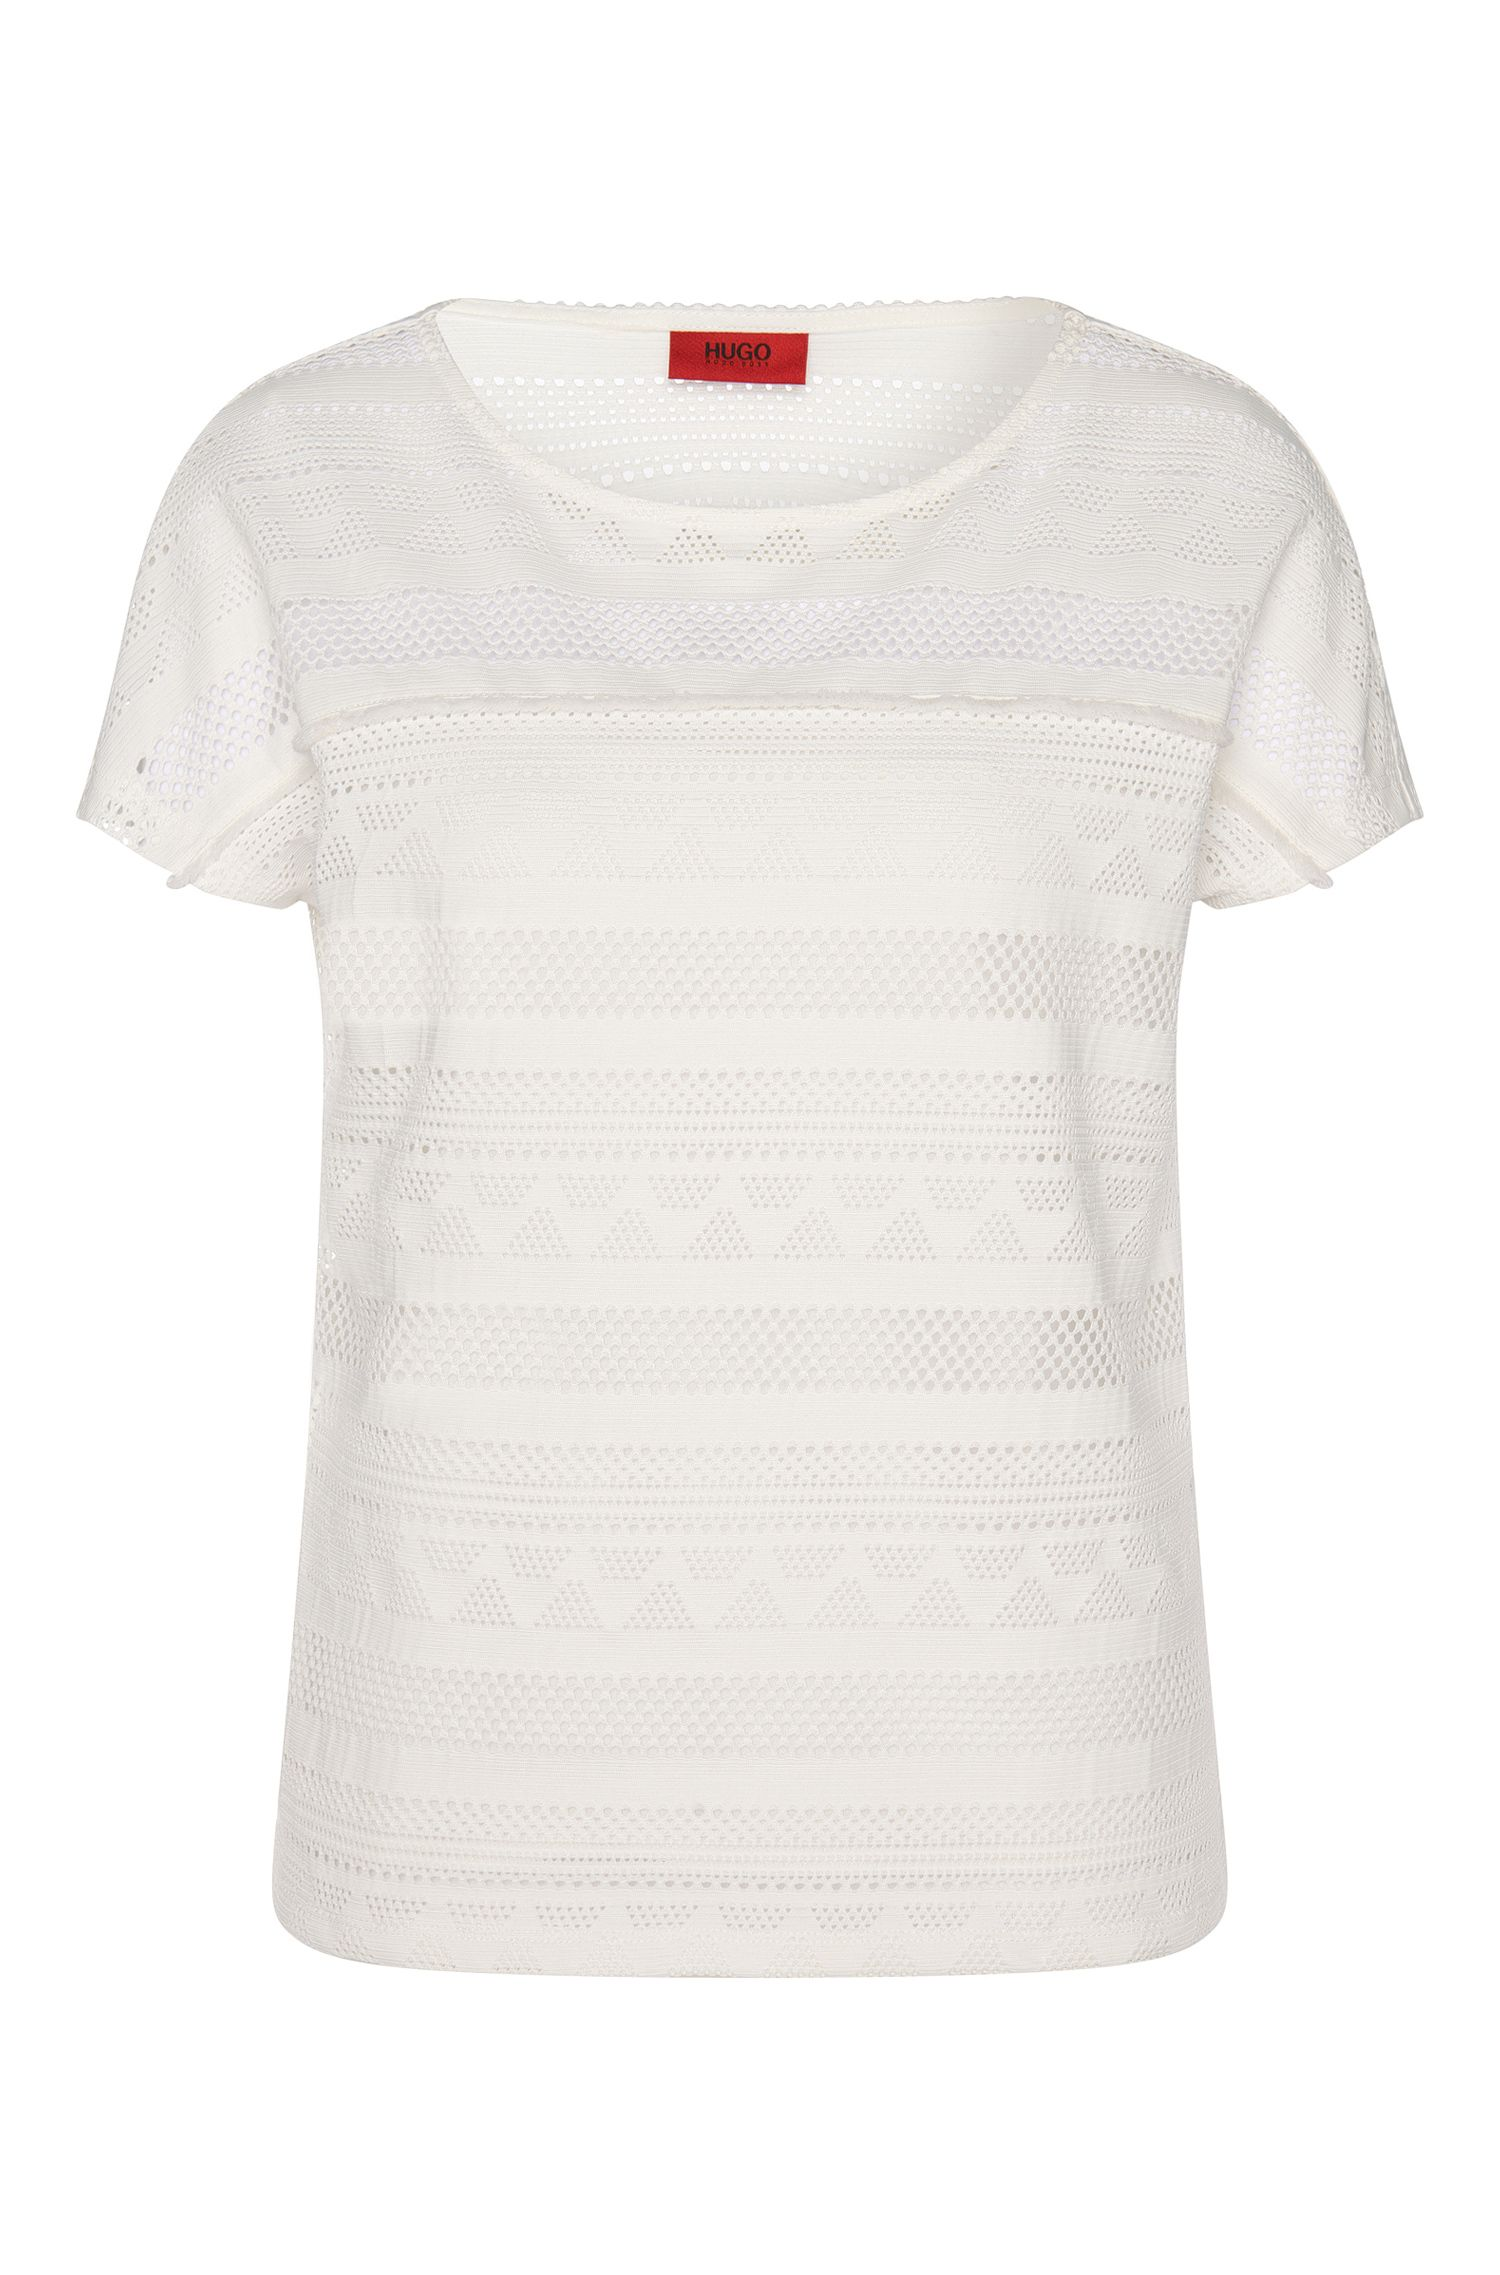 T-shirt with cutwork embroidery: 'Dellace'